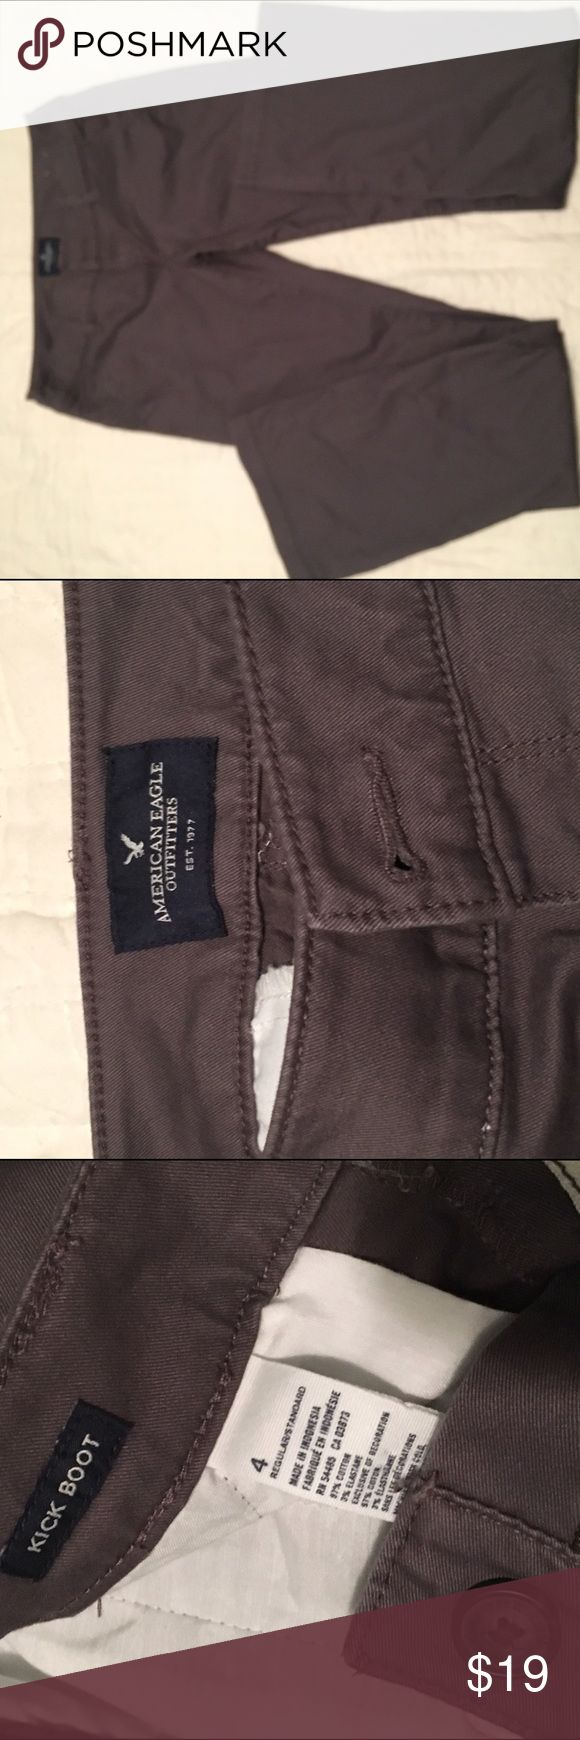 American Eagle Slate Grey Kick Boot Trousers Like new, slate grey American Eagle kick boot trousers, size 4. American Eagle Outfitters Pants Trousers